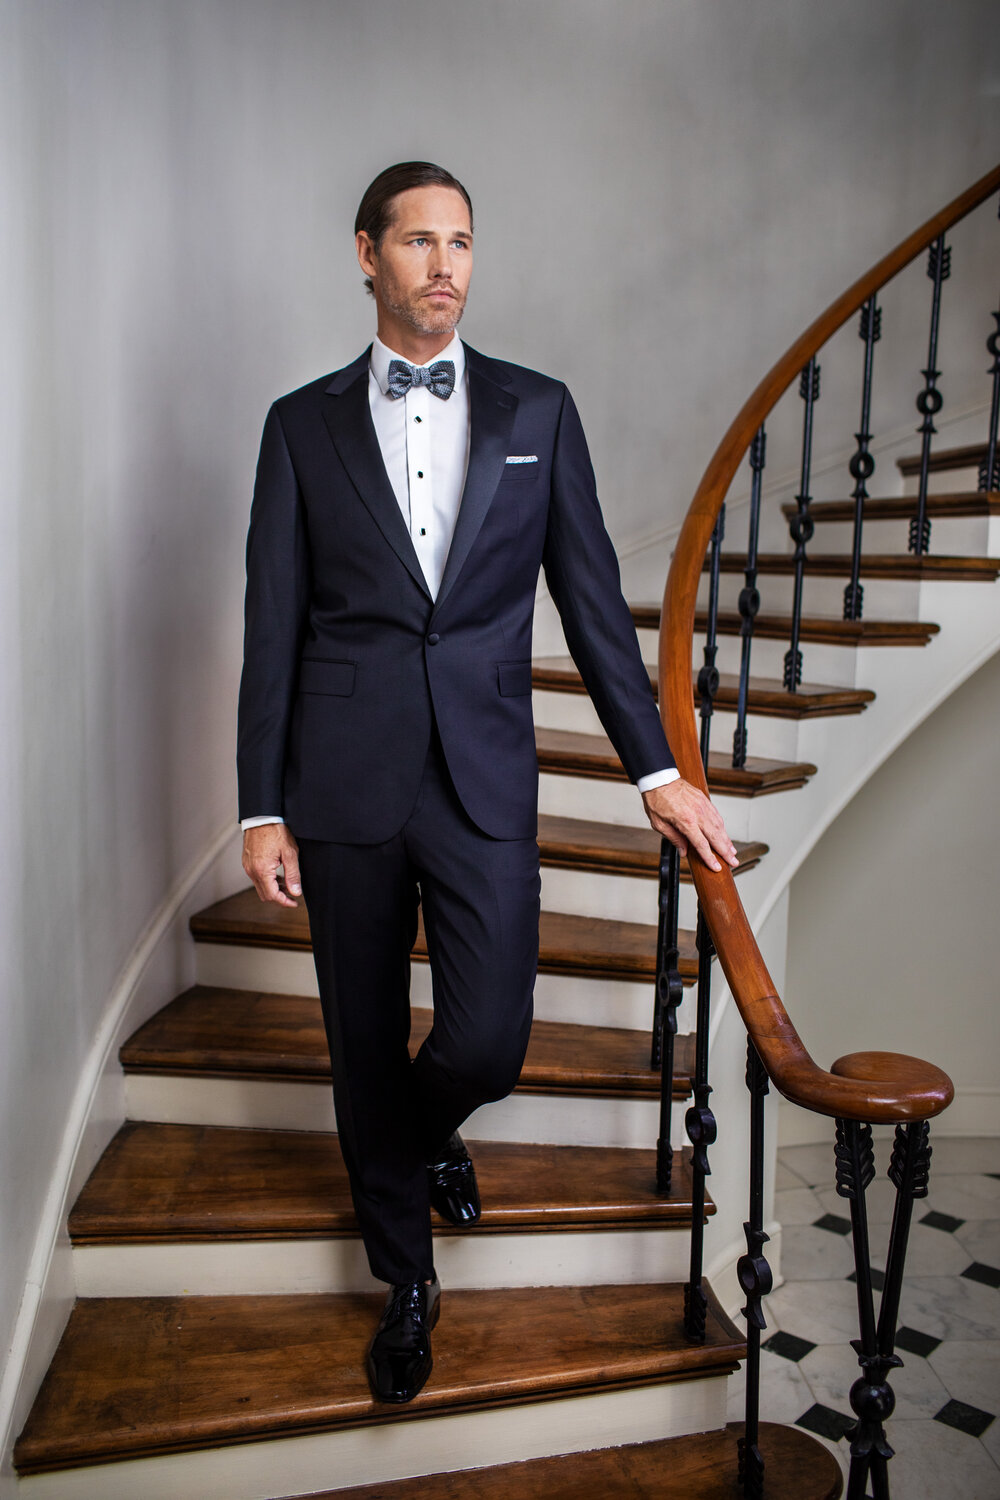 Man Stand on stairs in tuxedo